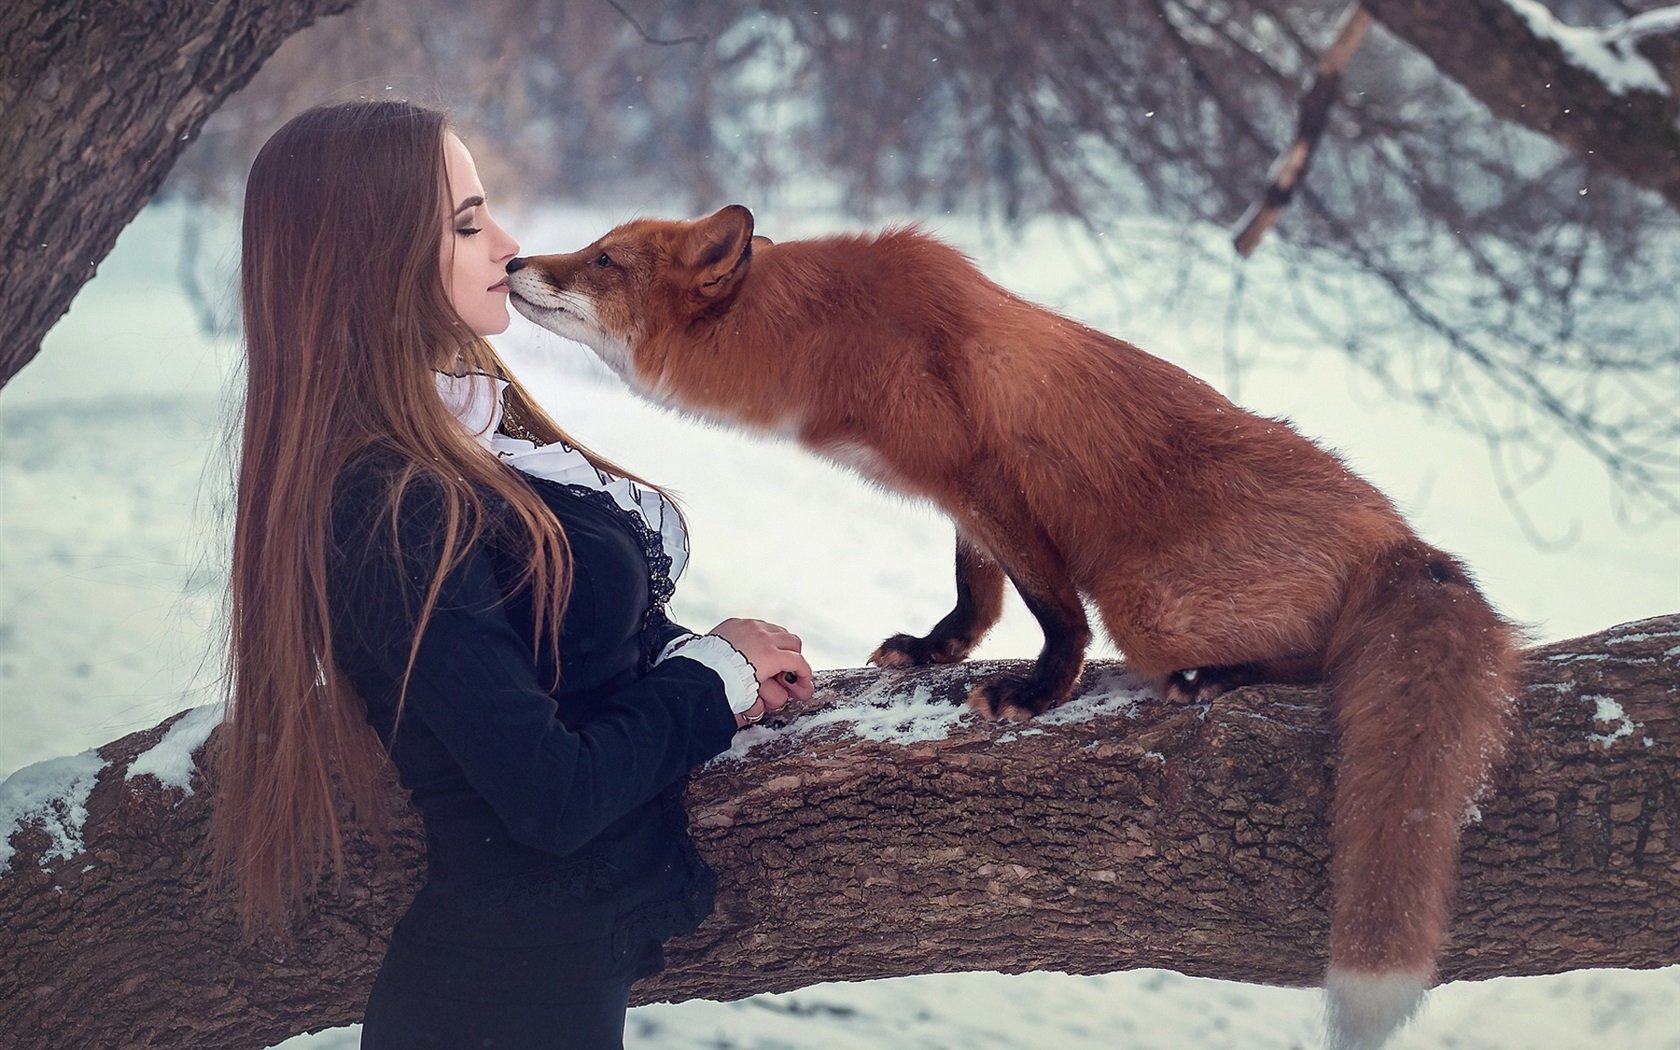 Wallpaper Girl And Fox, Kiss, Snow, Winter 1920X1200 Hd -7649